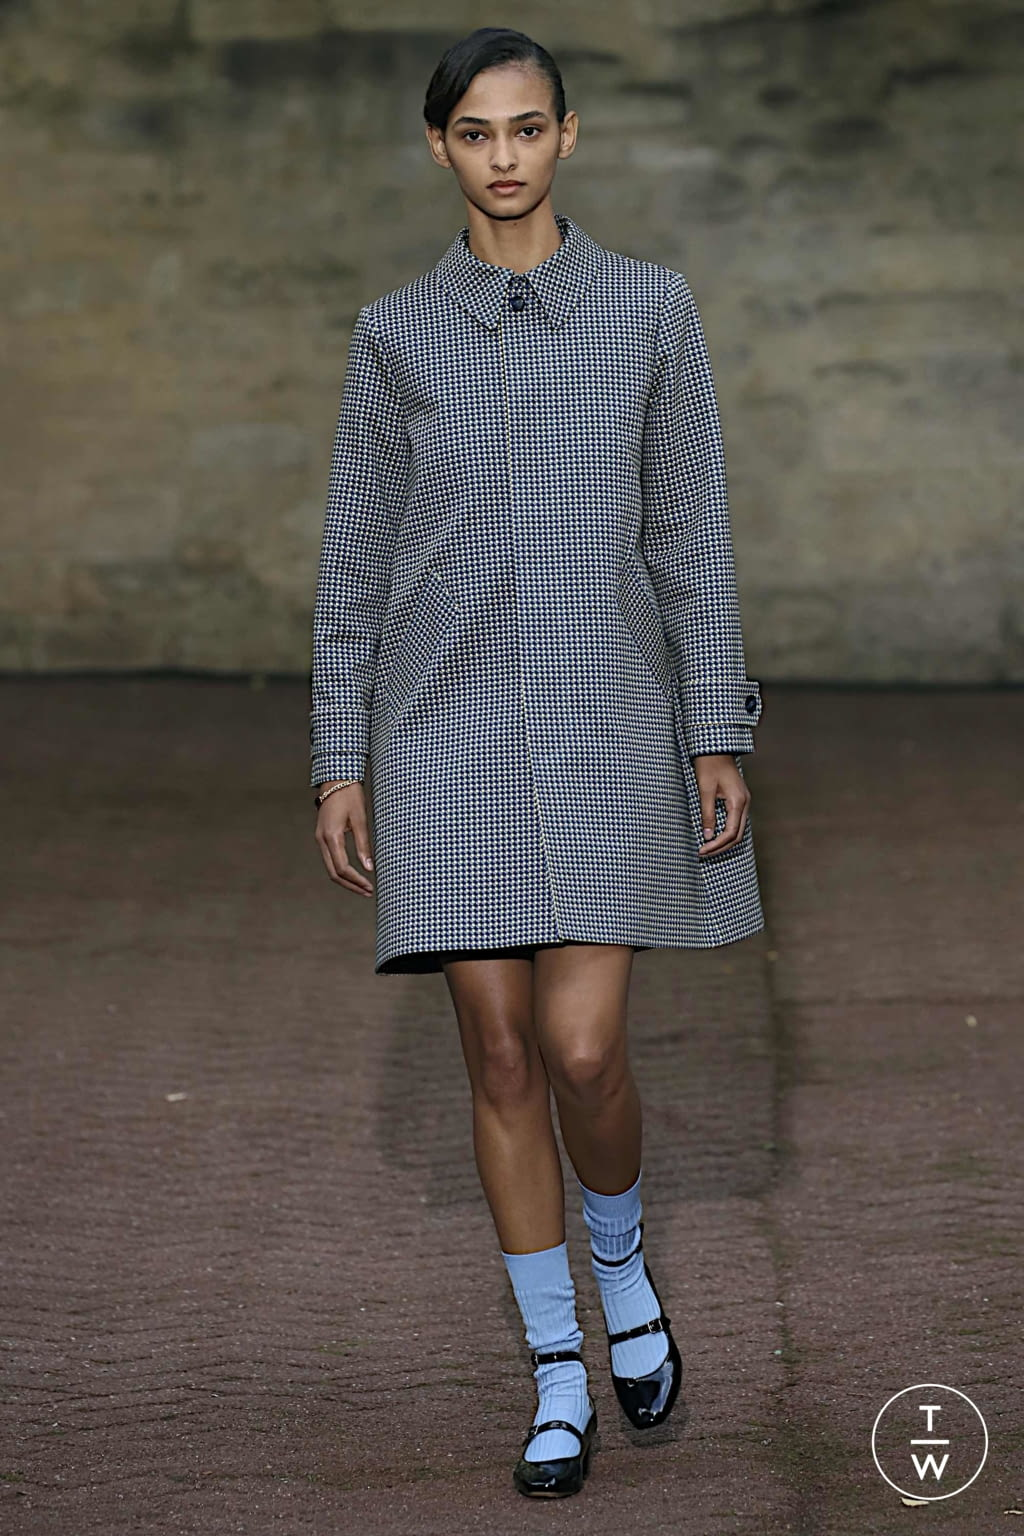 Fashion Week Paris Spring/Summer 2020 look 18 de la collection Apc womenswear